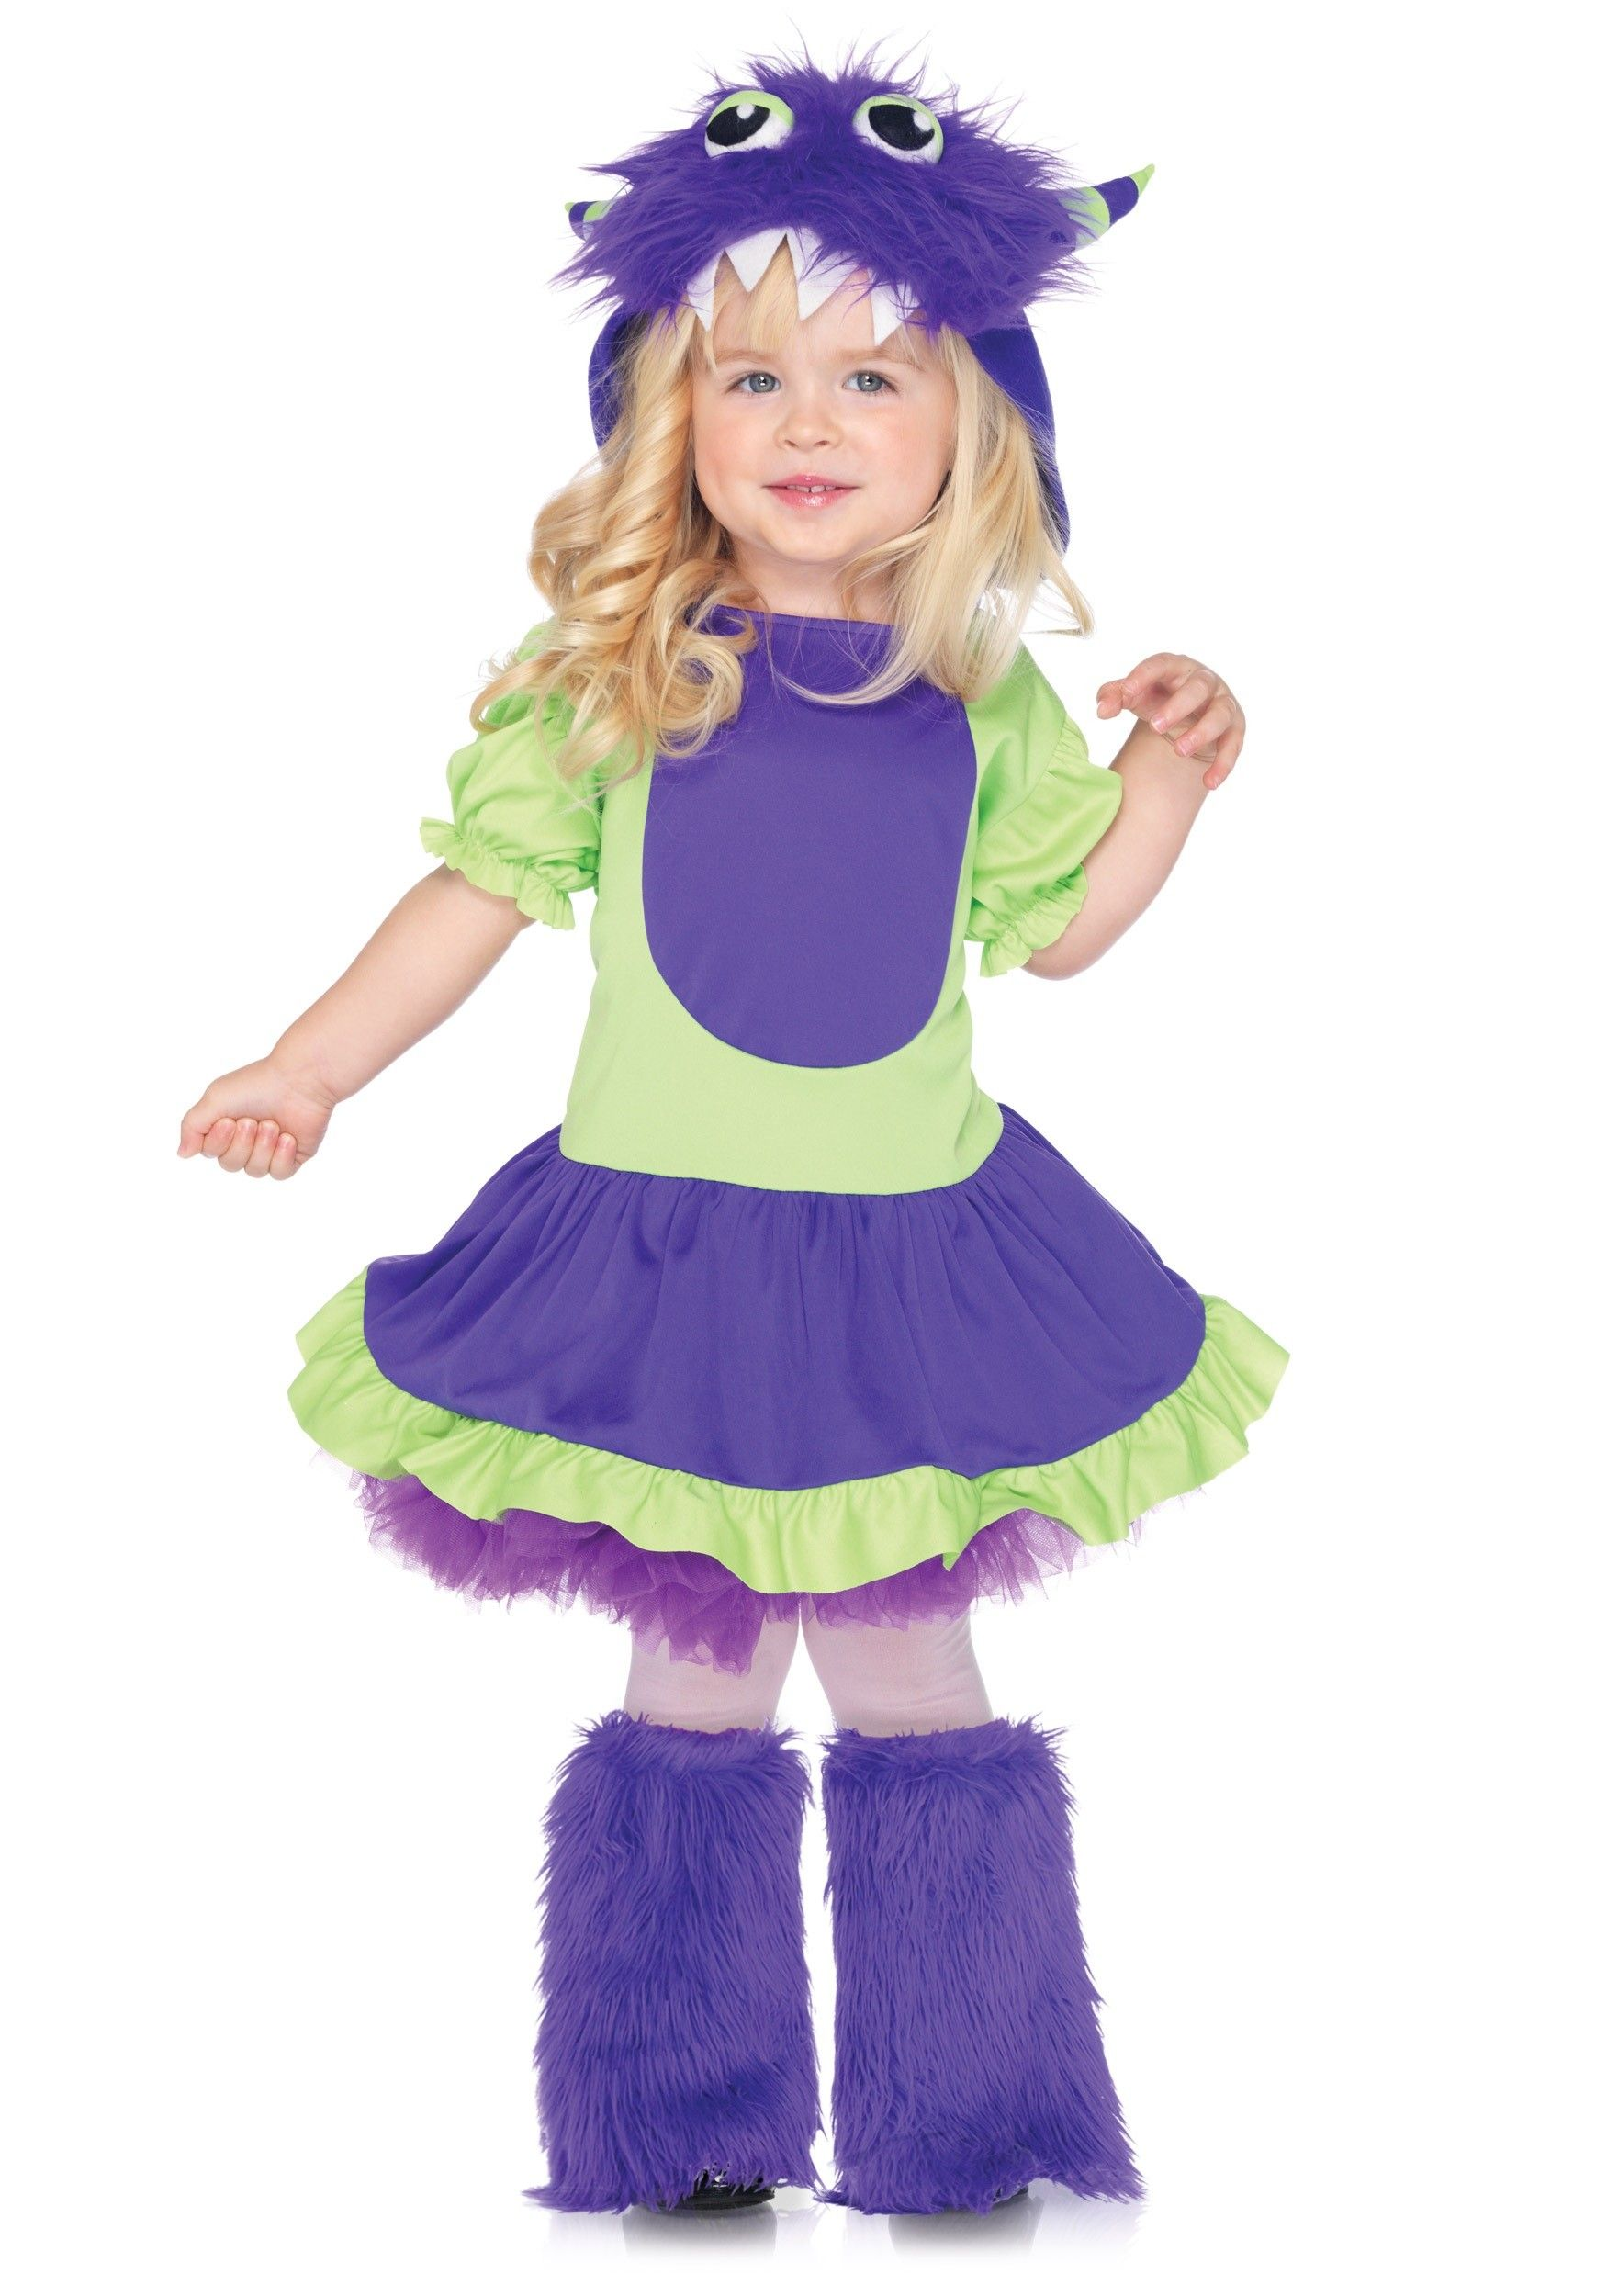 cute baby girl costume ideas girls kids summer sleeveless dress